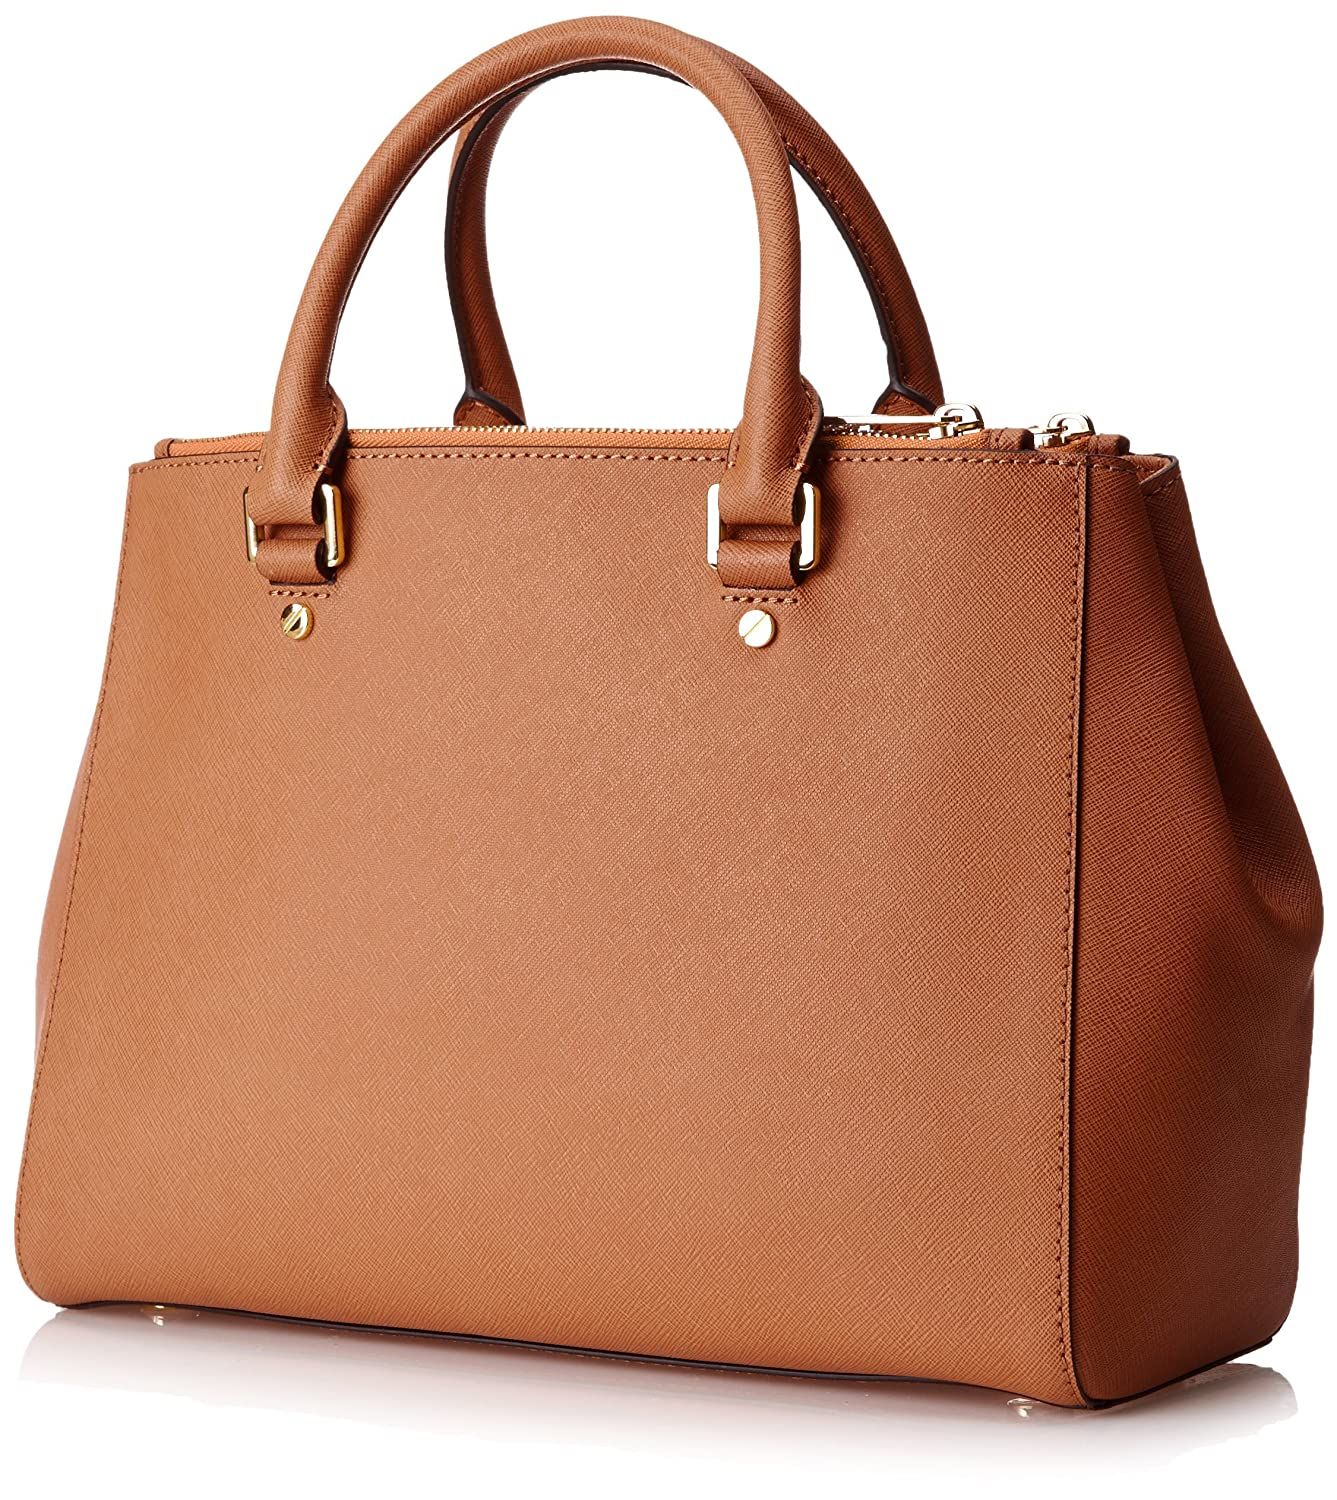 8cce3b311875 Michael Kors Sutton Medium Satchel Luggage: Amazon.co.uk: Luggage